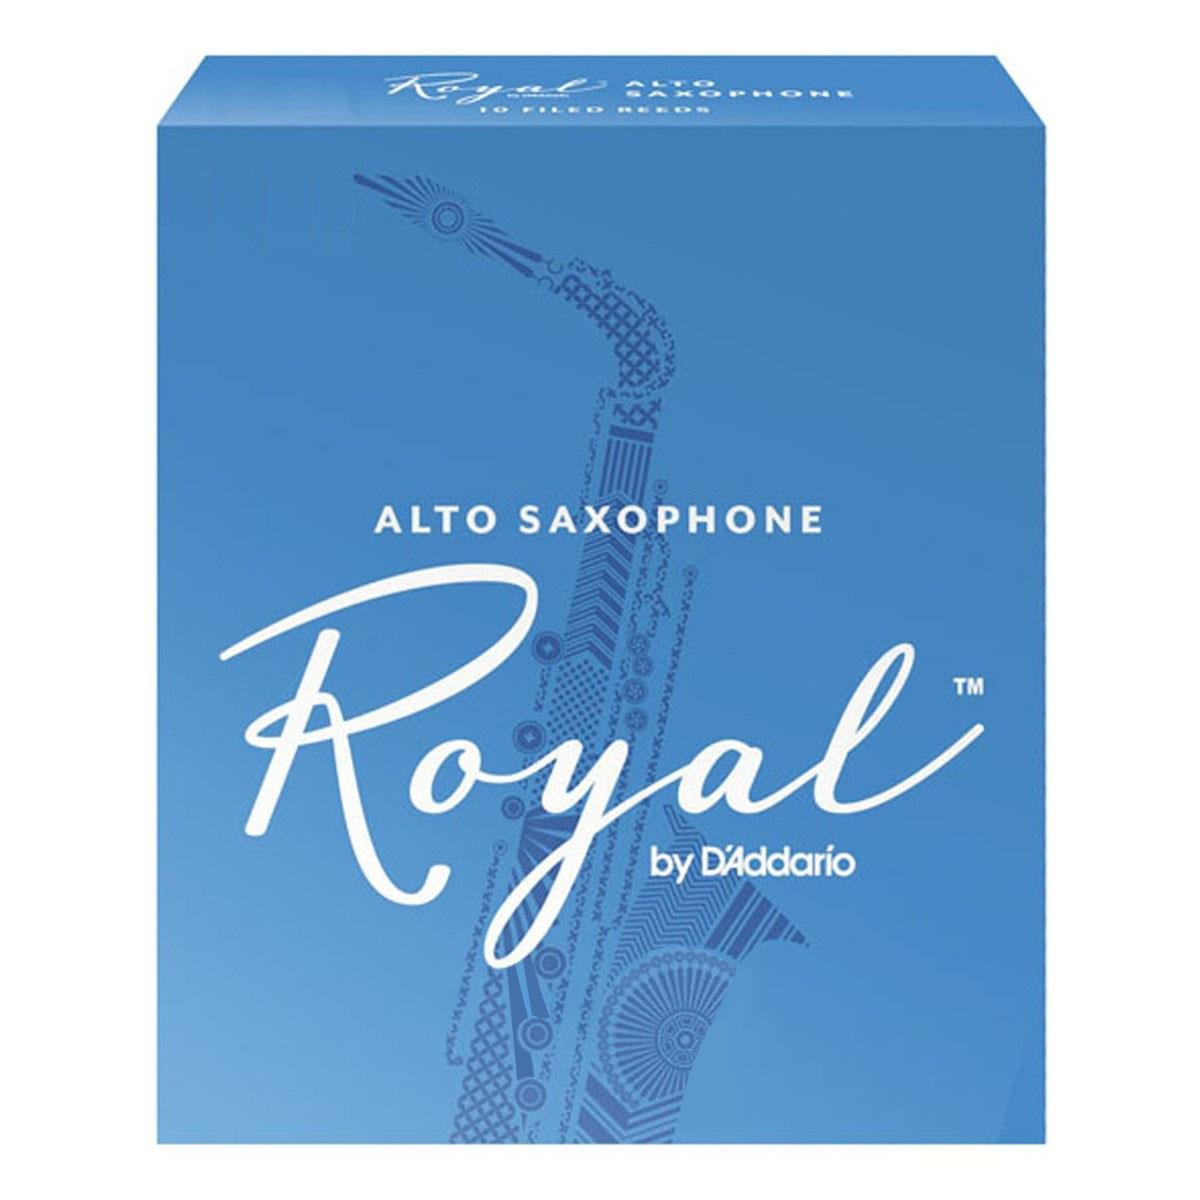 Image of D'Addario Woodwind Royal RJB1010 Alto Sax Reeds Strength 1 10-pack 0046716532930